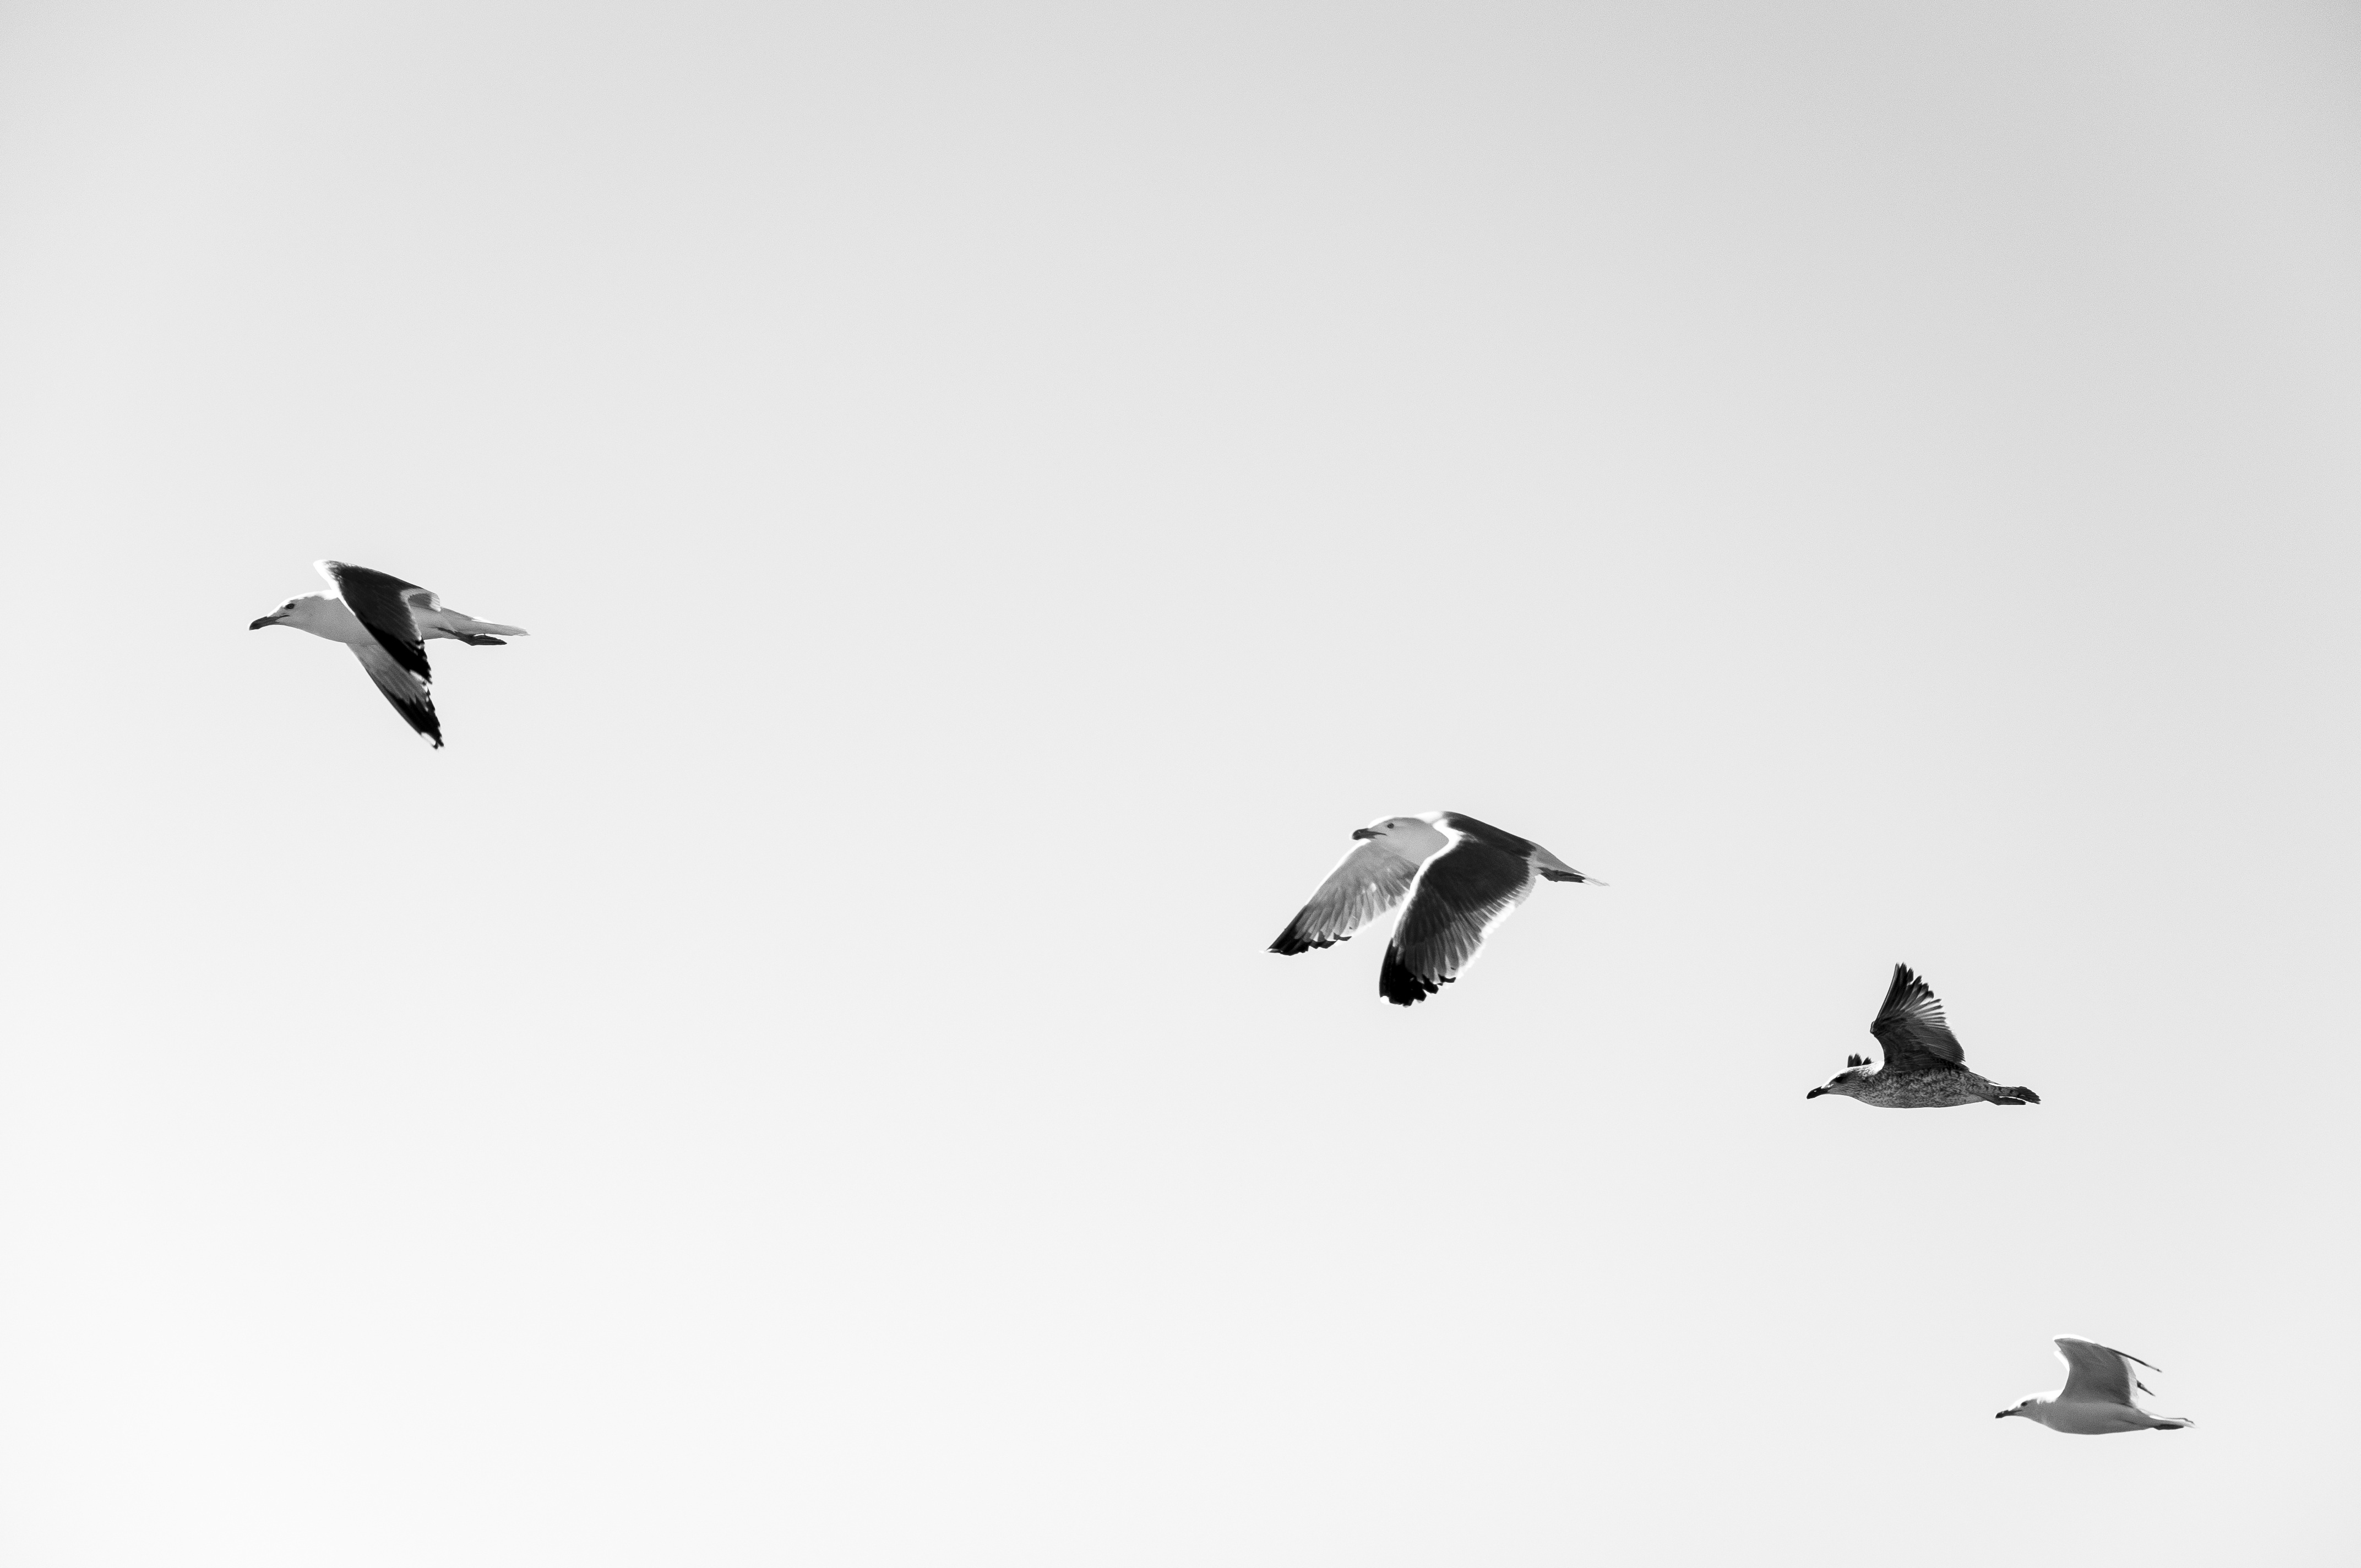 116226 download wallpaper Minimalism, Flight, Sky, Birds, Seagulls screensavers and pictures for free